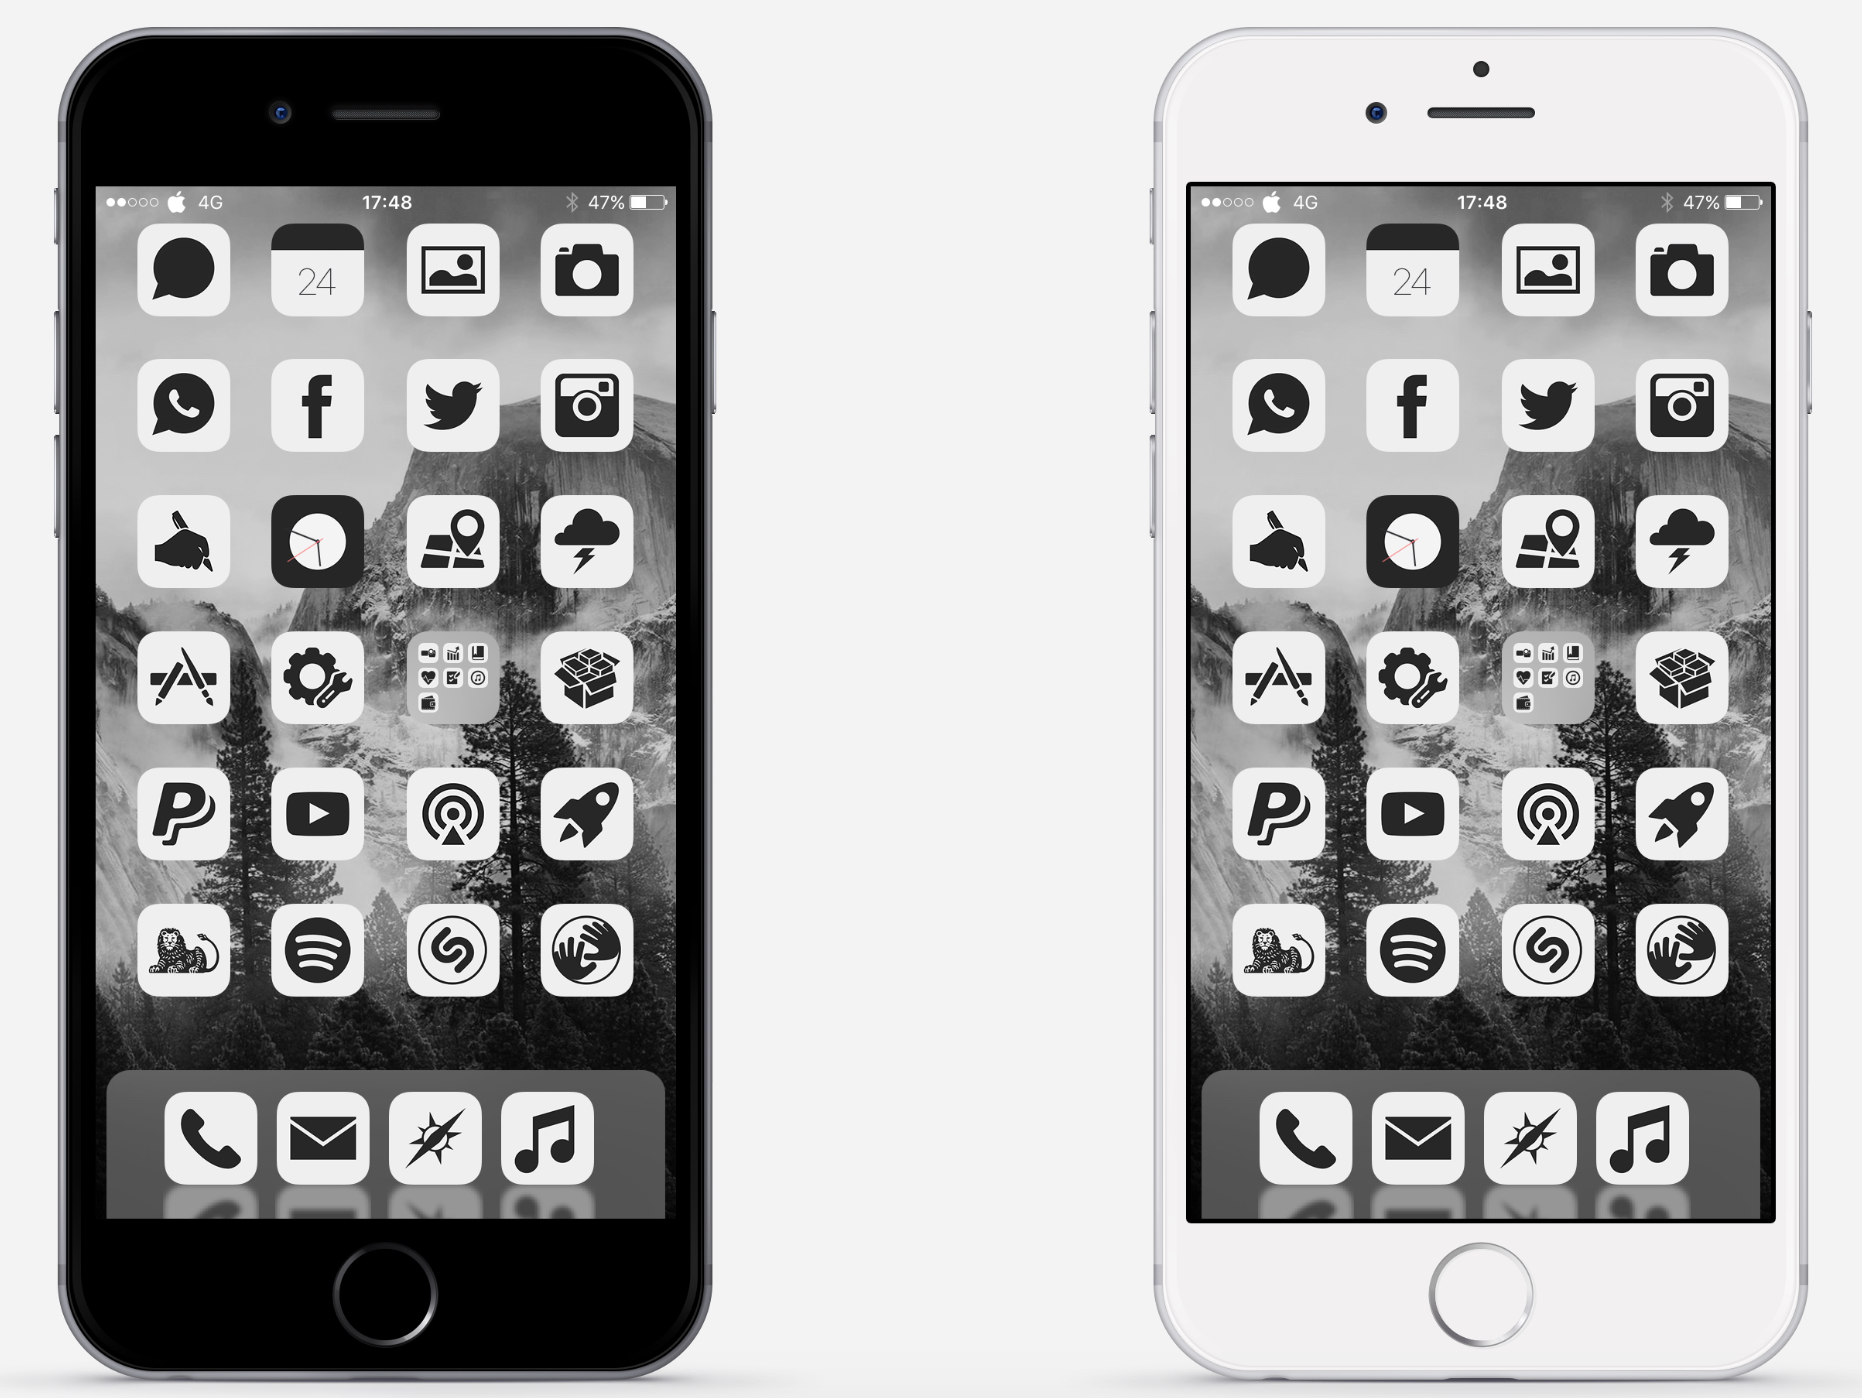 Involution - iDevice.ro